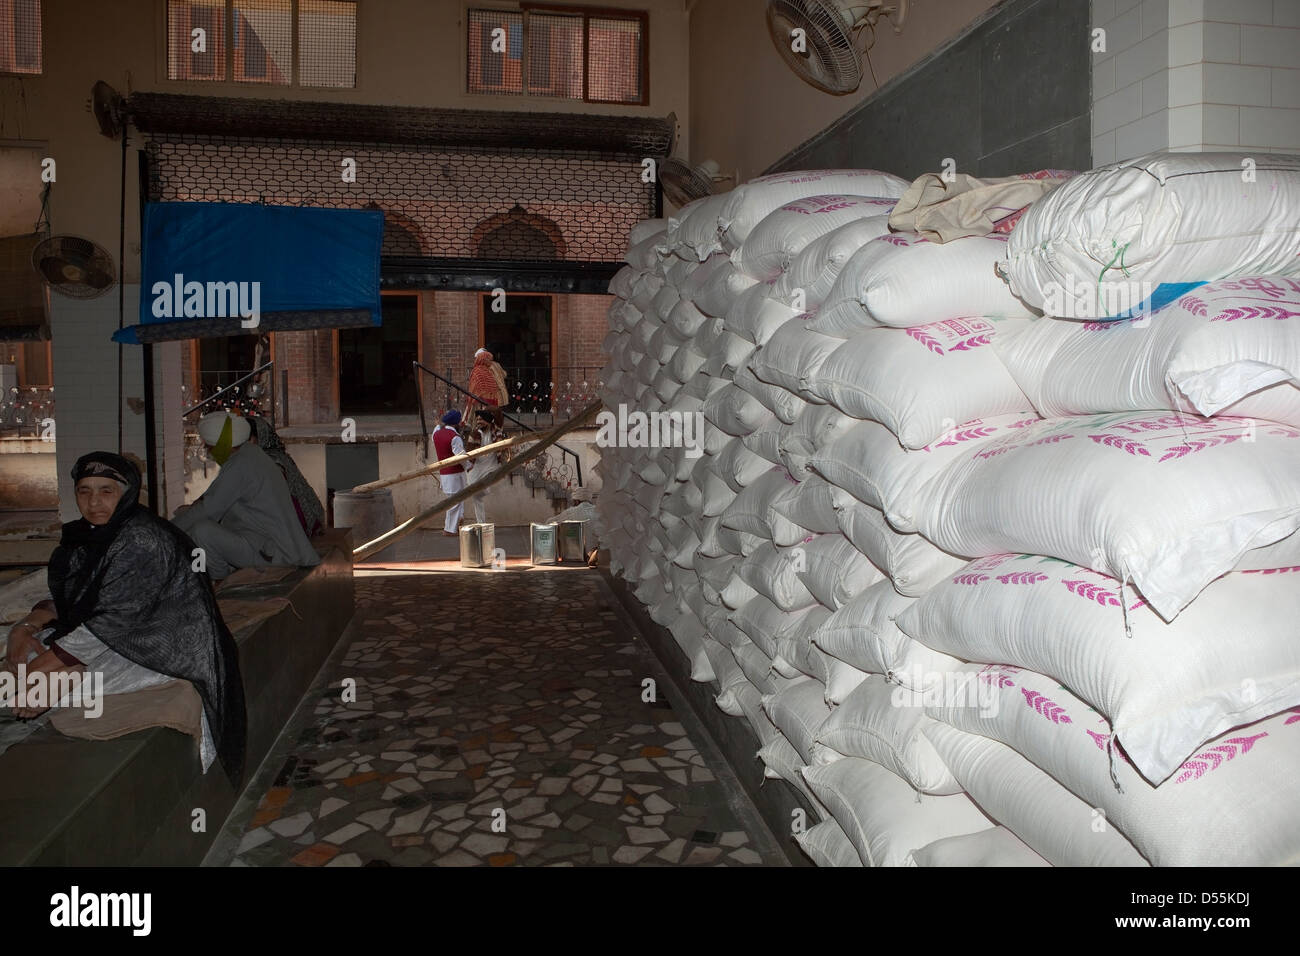 A stack of atta flour in sacks at the free kitchen inside the Golden Temple complex at Amritsar Punjab India - Stock Image